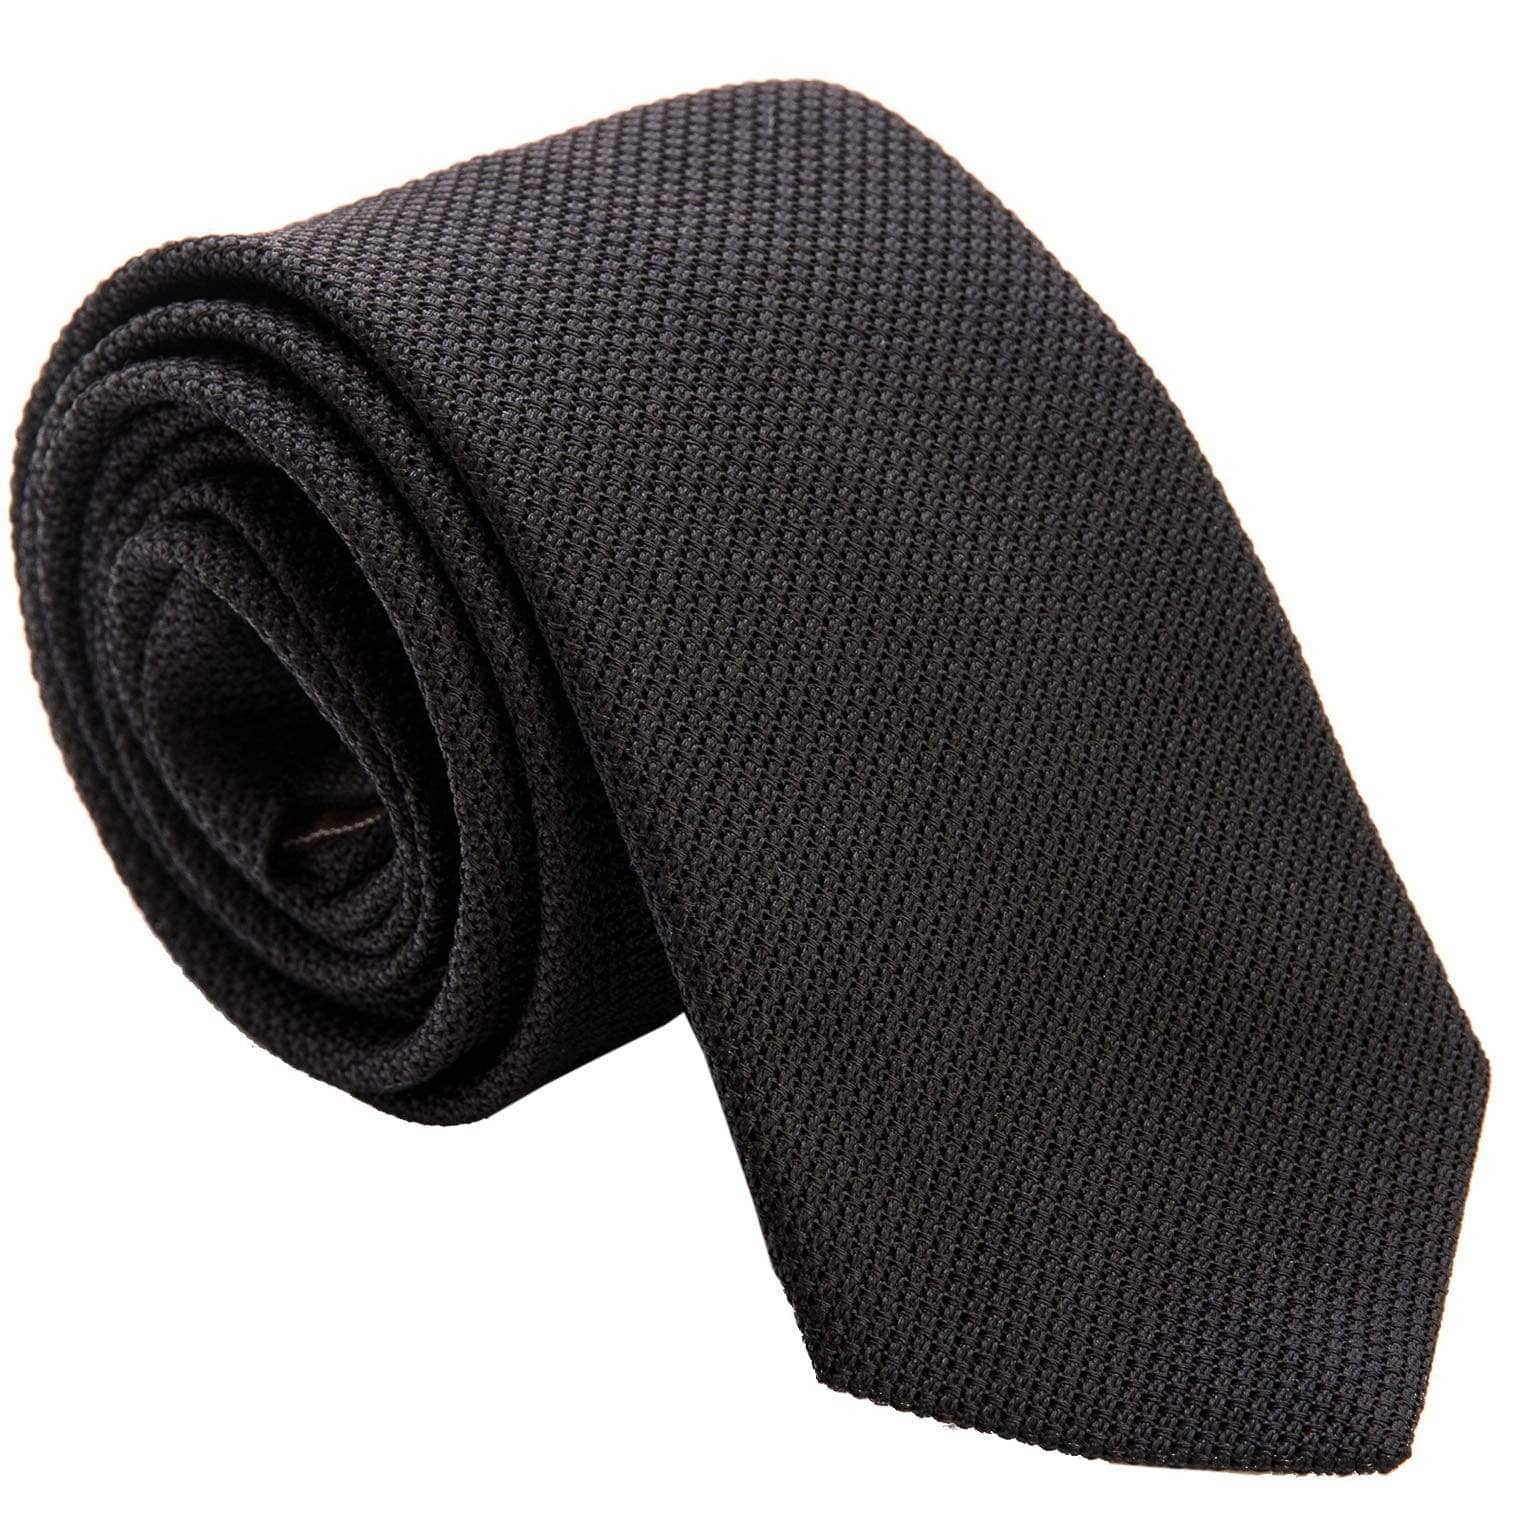 Black Silk Grenadine Tie - Extra Long - 100% Italian